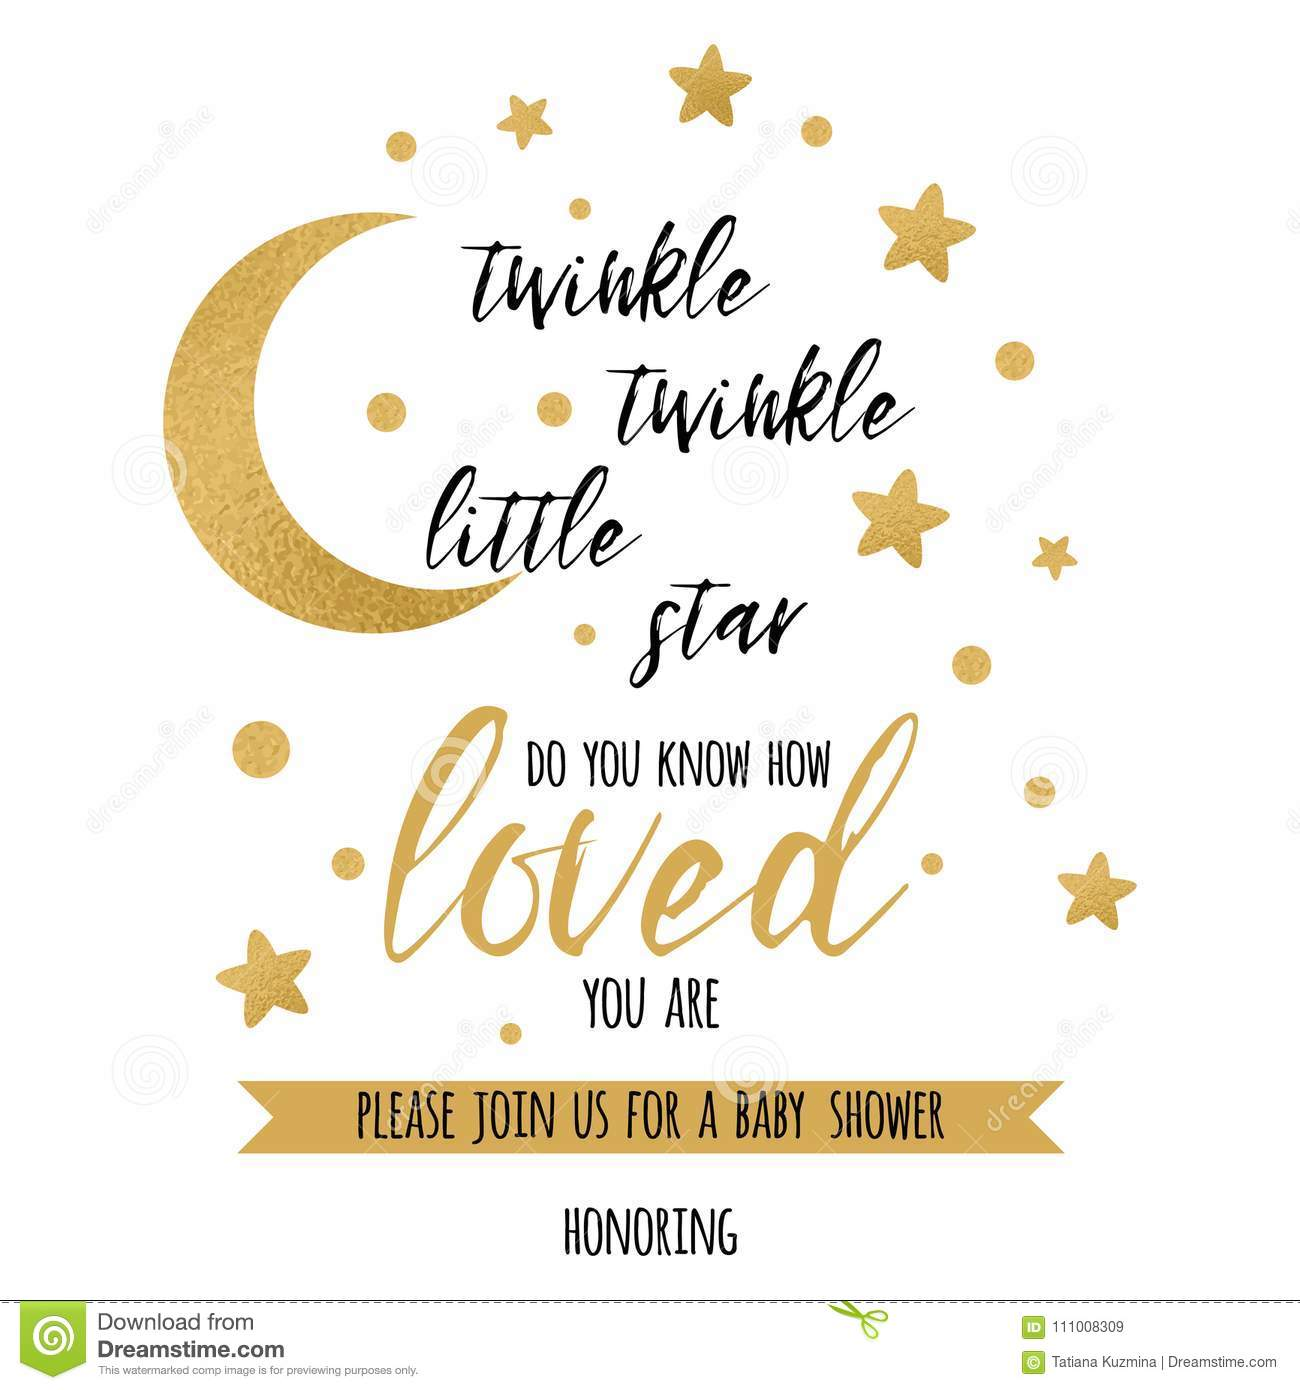 Twinkle Twinkle Little Star Text With Gold Star And Moon For